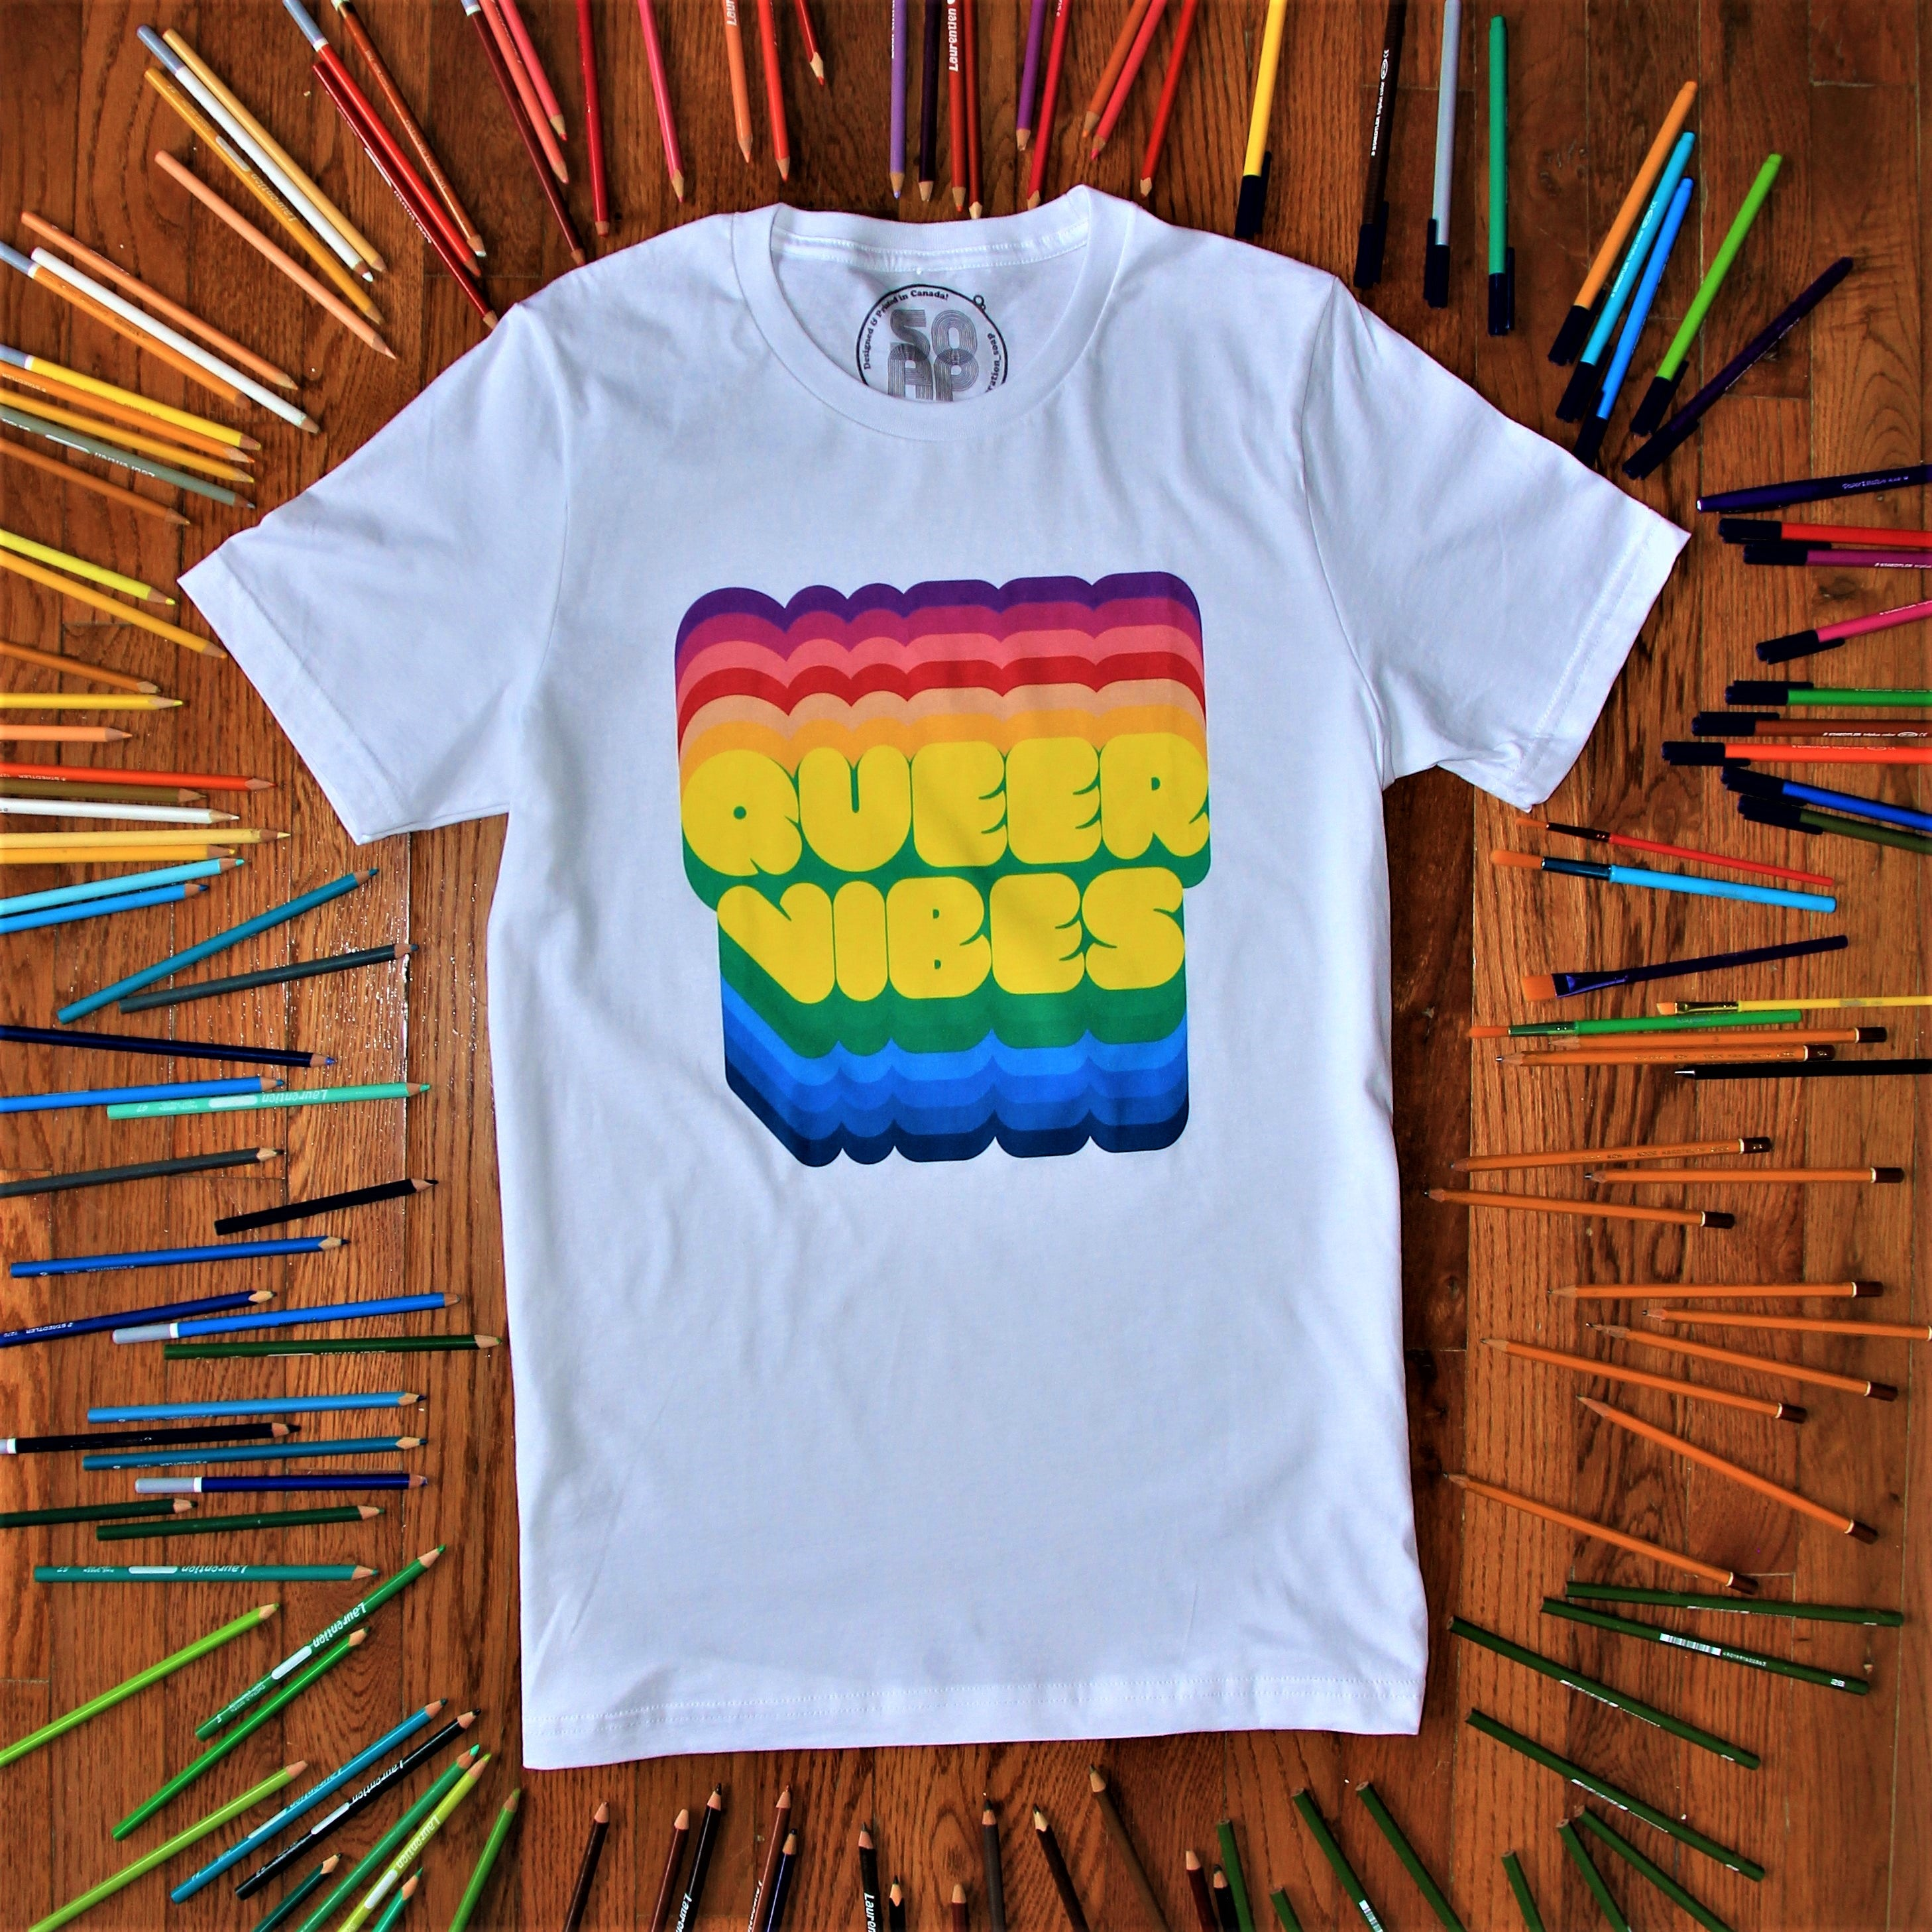 QUEER VIBES - white t-shirt with yellow text with rainbow borders reading 'QUEER VIBES'